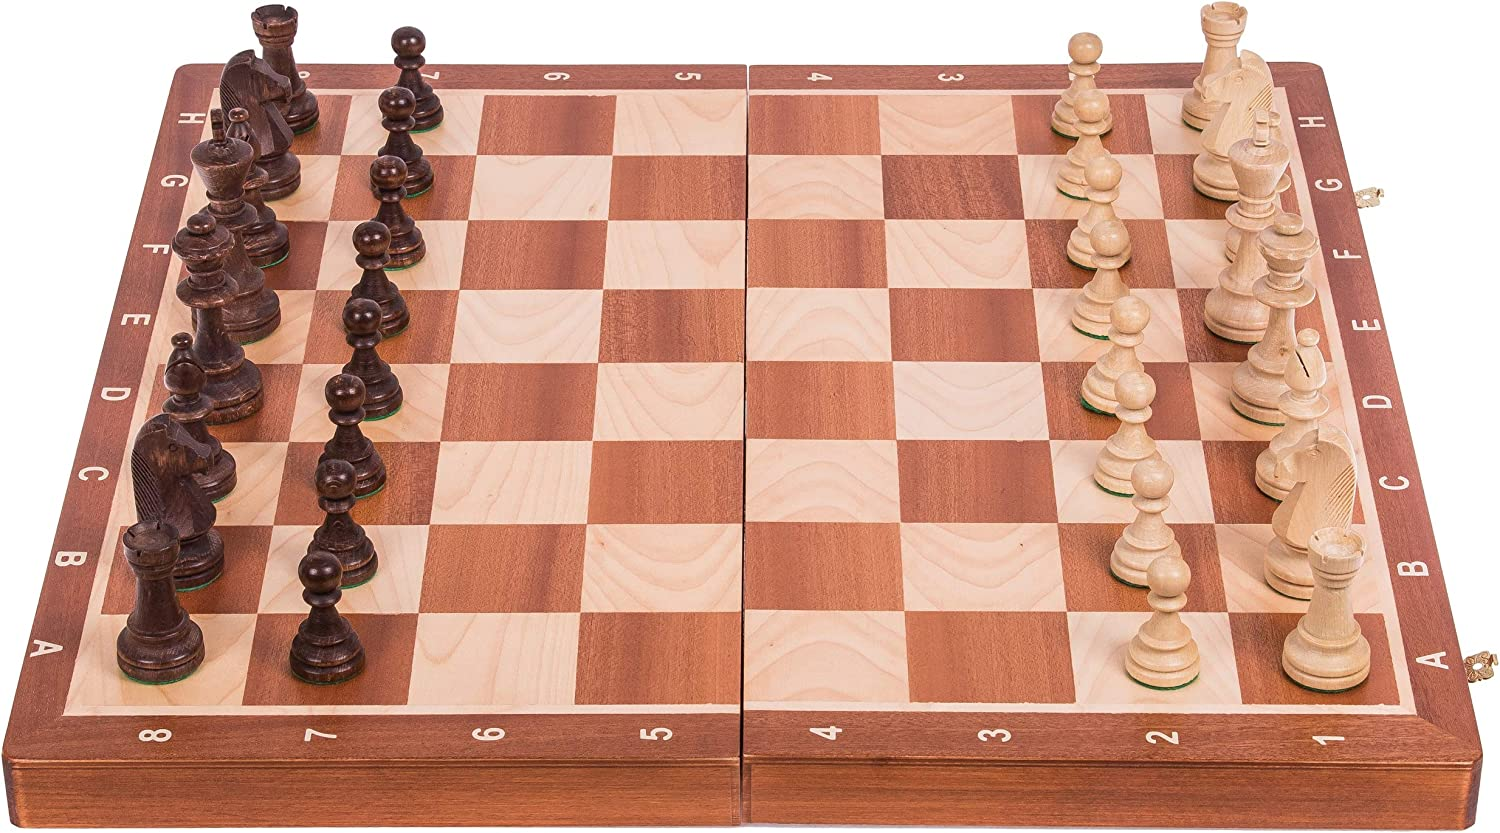 SQUARE  Wooden Chess Tournament No. 6  MAHOGANY  Chessboard & Chess Pieces